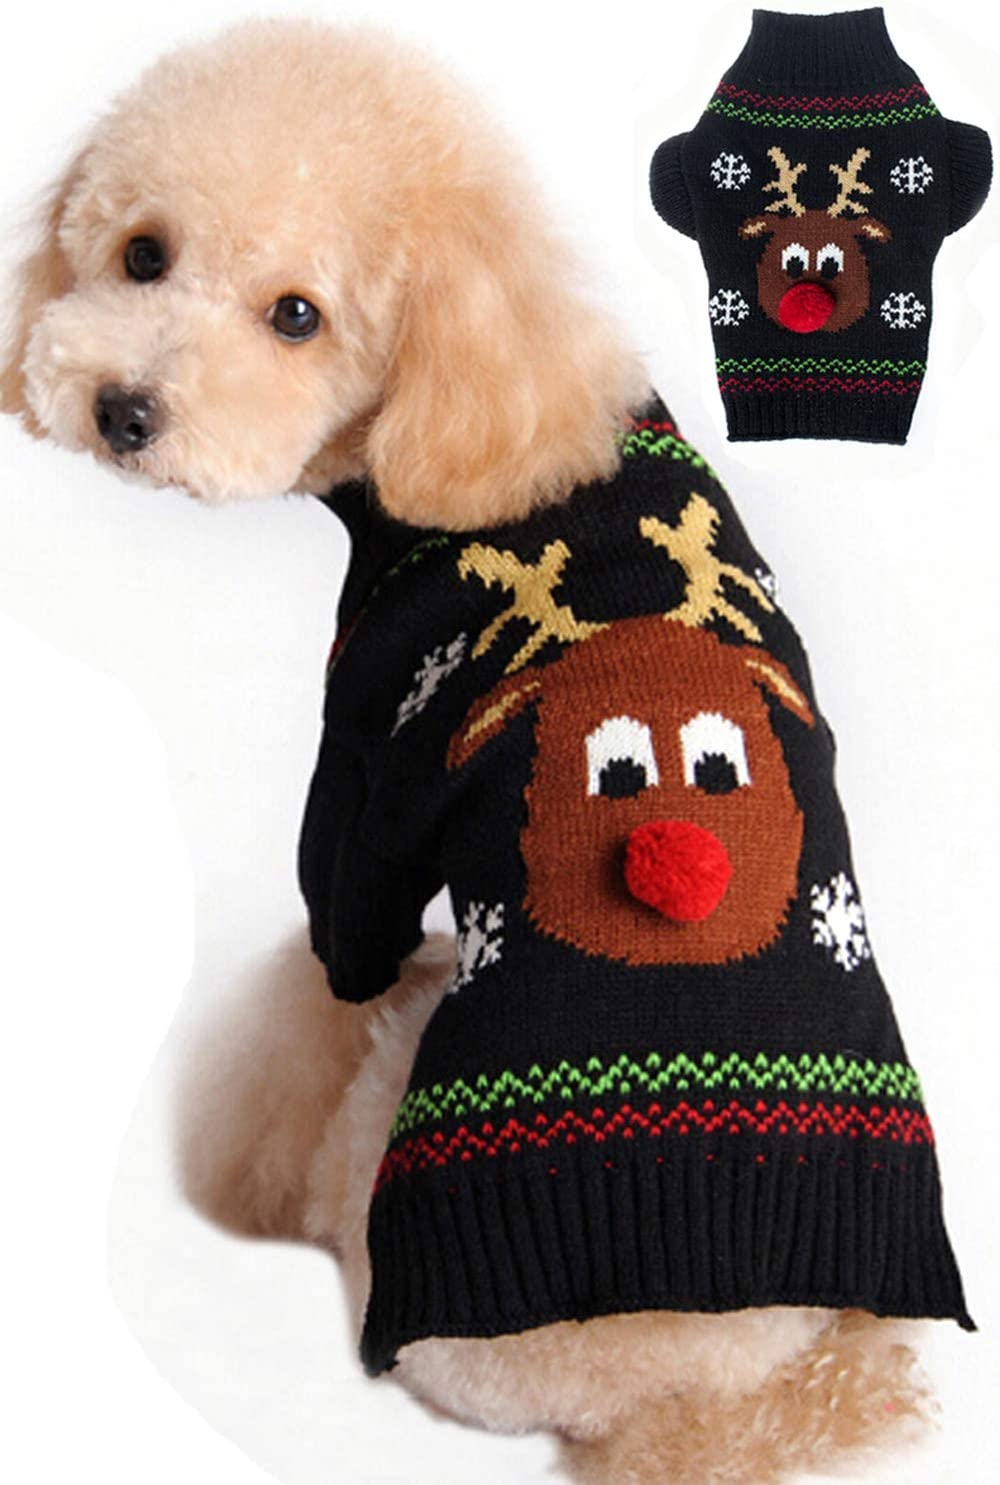 Amazon Com Bobibi Dog Sweater For Christmas Cartoon Reindeer Pet Cat Winter Knitwear Warm Clothes Medium Kitchen Dining